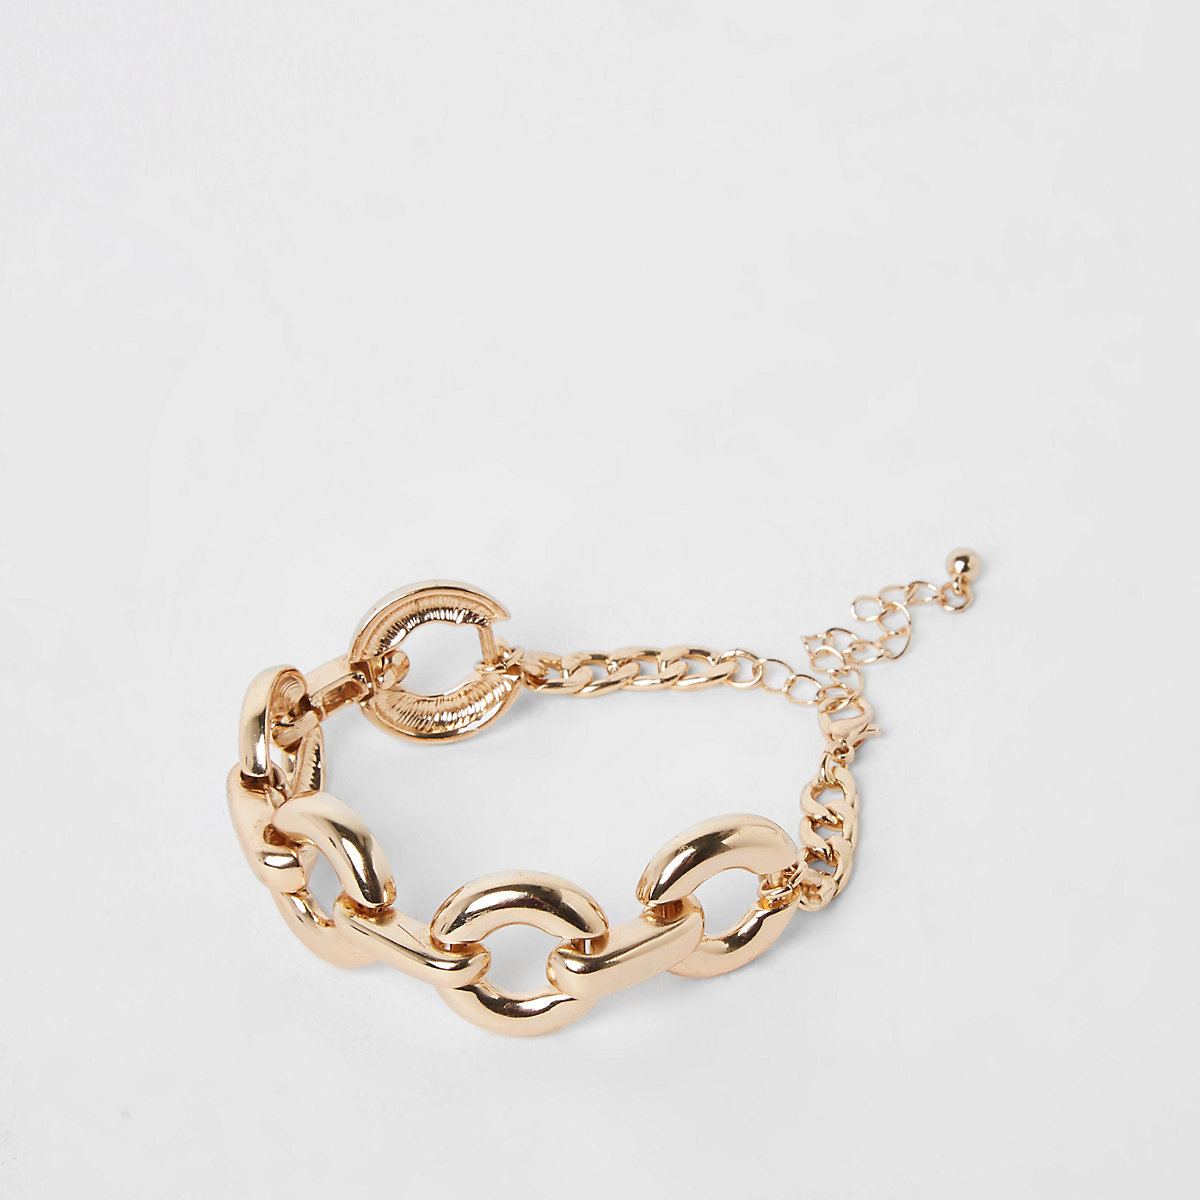 Gold color curb chain bracelet